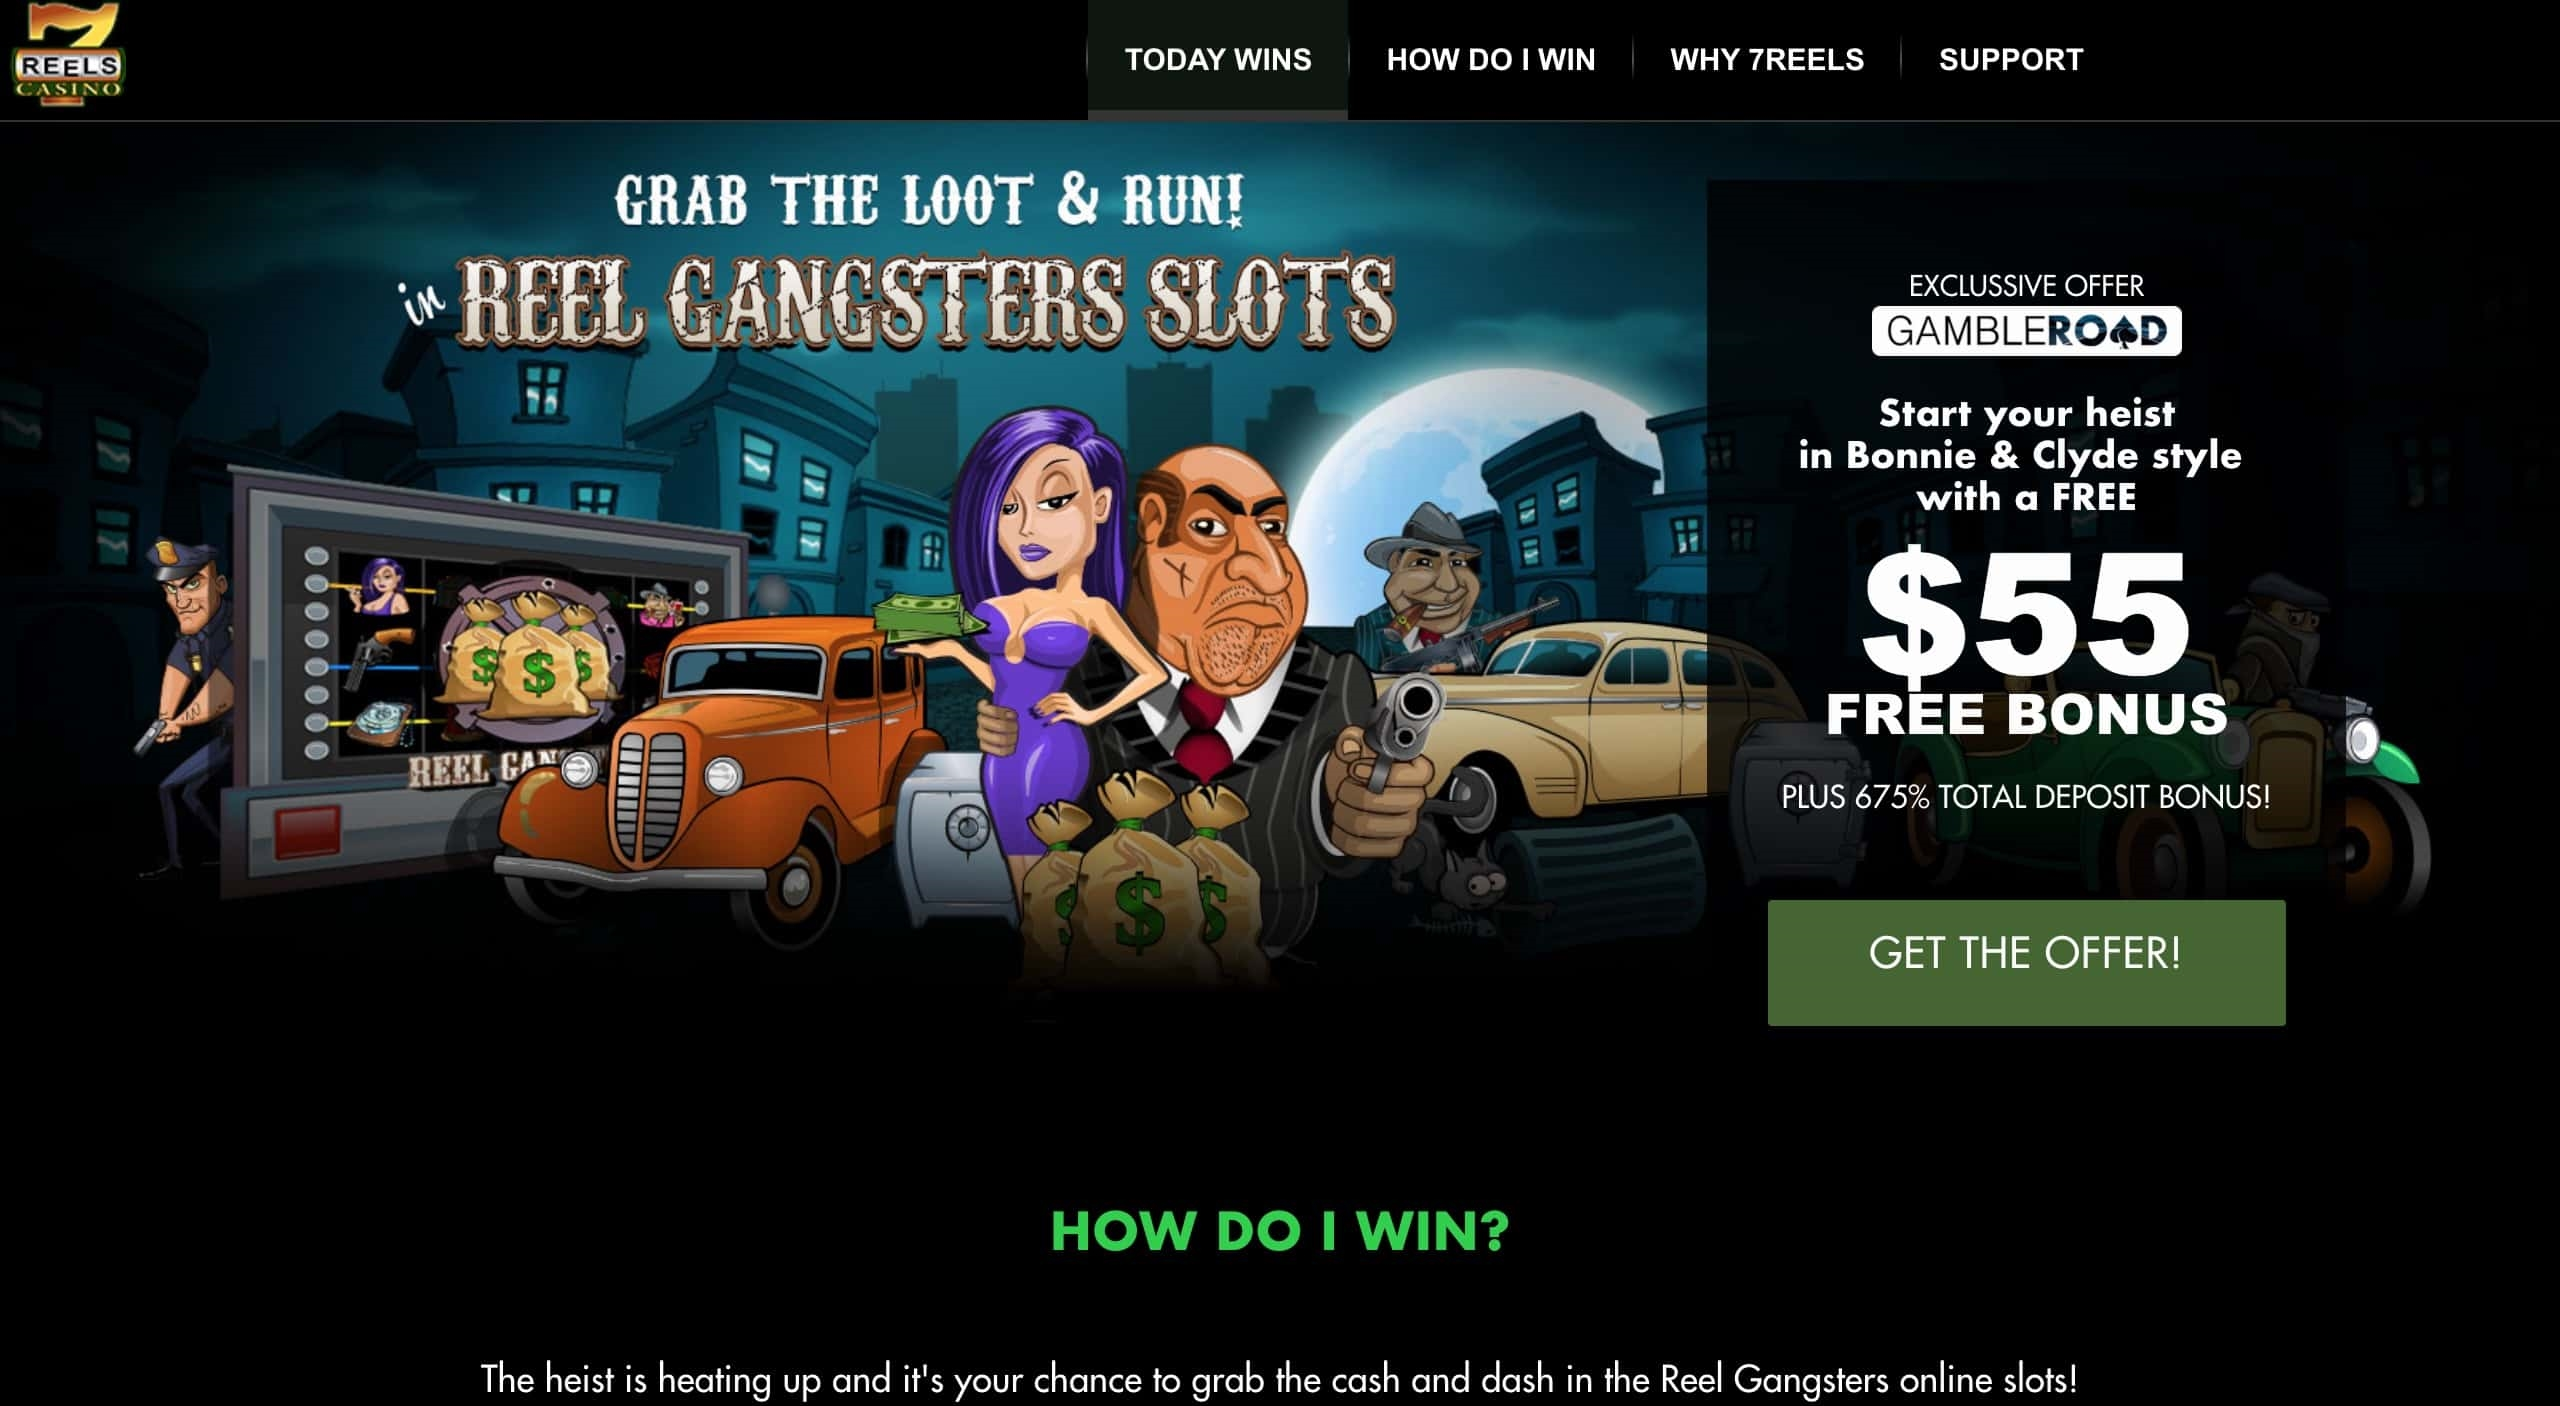 770% casino match bonus på Sloto'Cash